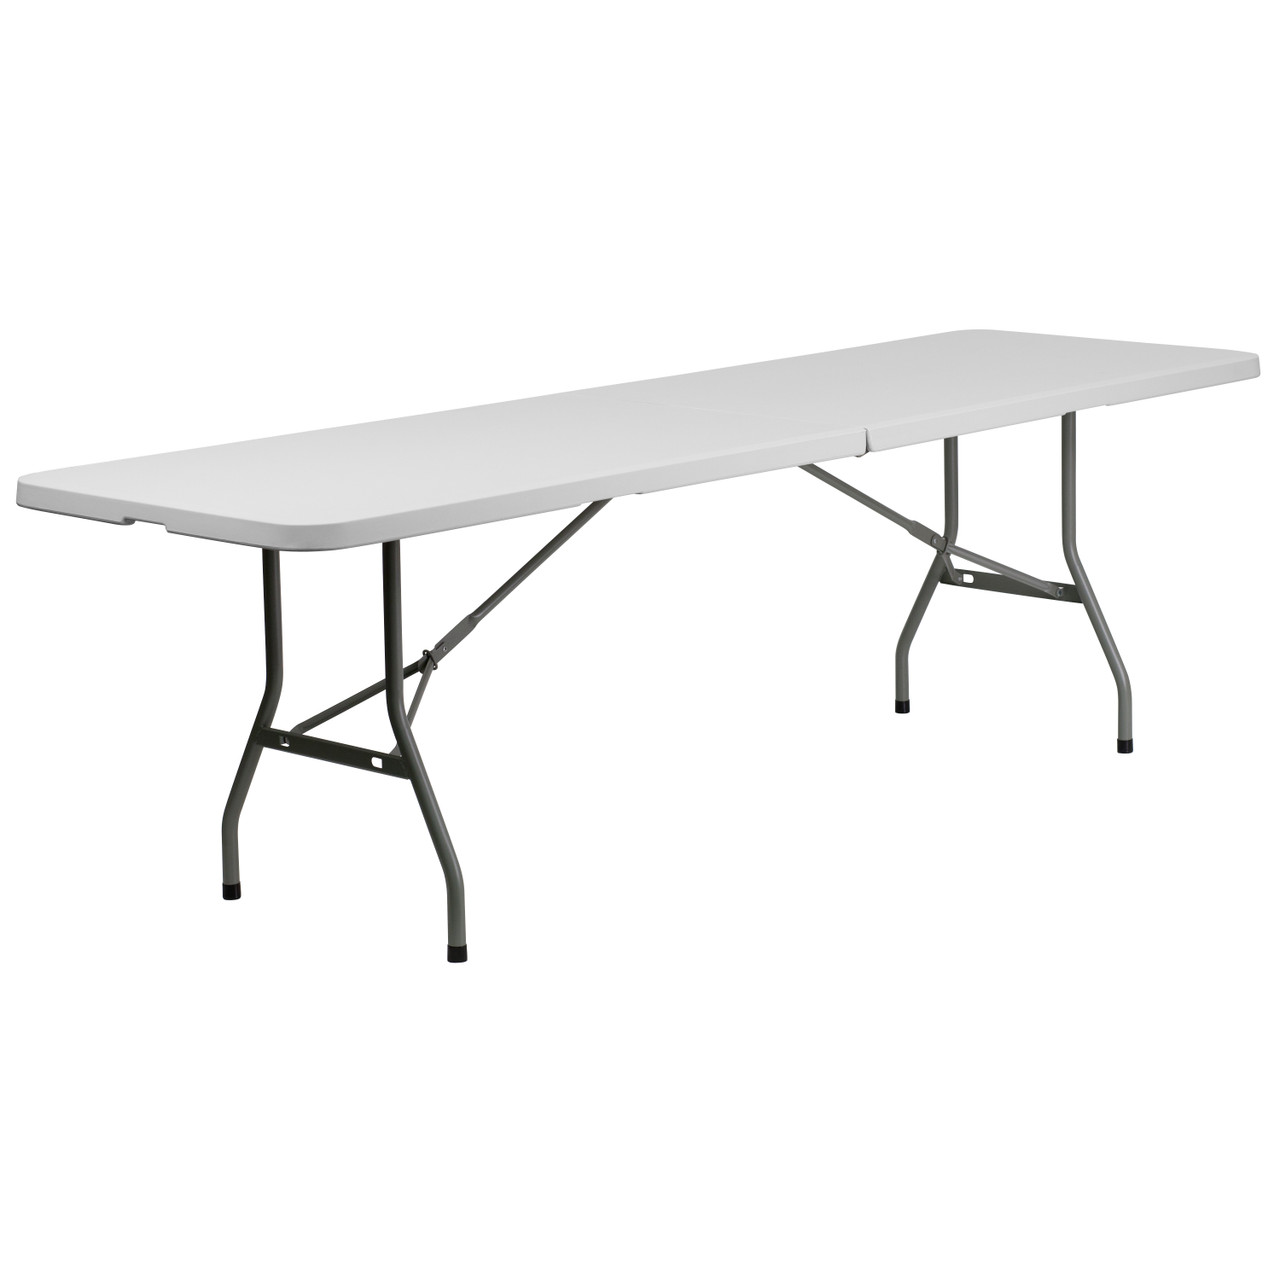 Folding Table With Handle.5 Pack Advantage 8 Foot Bi Fold Granite White Plastic Banquet Folding Table With Handle 5 Rb 3096fh Gg